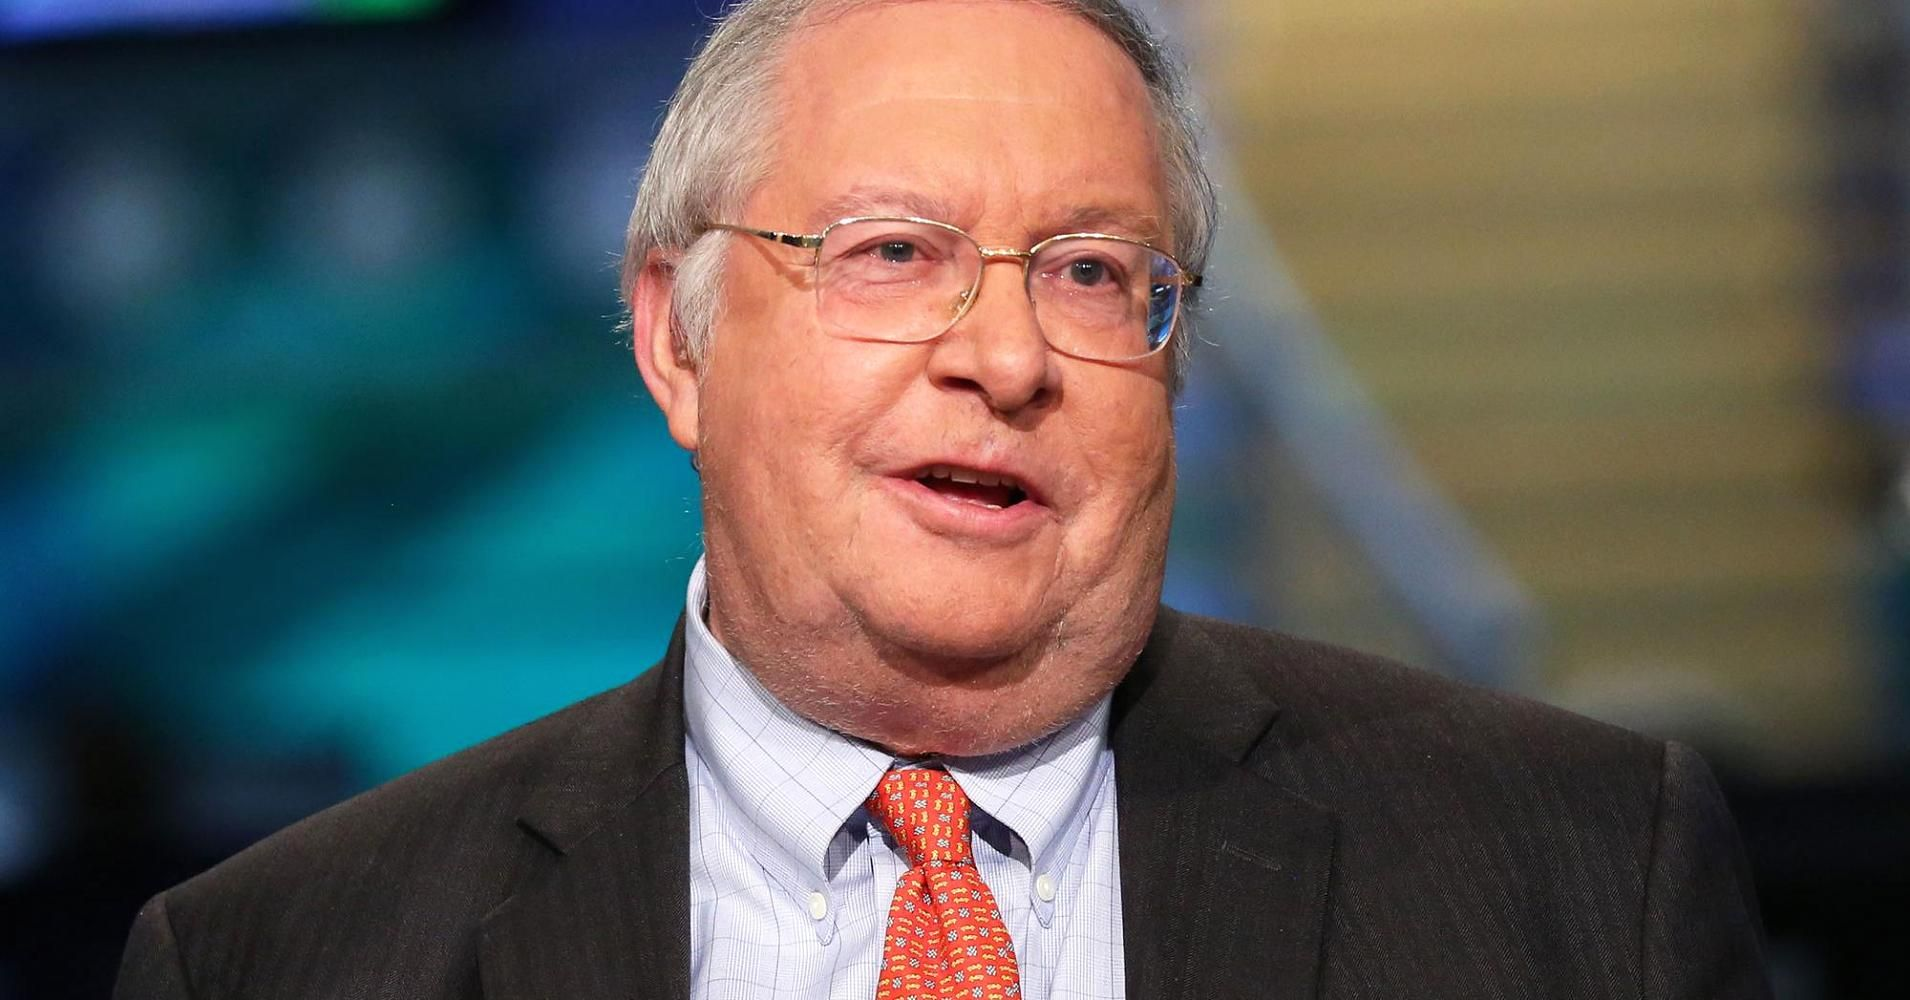 Bill Miller 039s Hedge Fund Has 50 Its Money In Bitcoin What Is Bitcoin Mining Bitcoin Bitcoin Mining